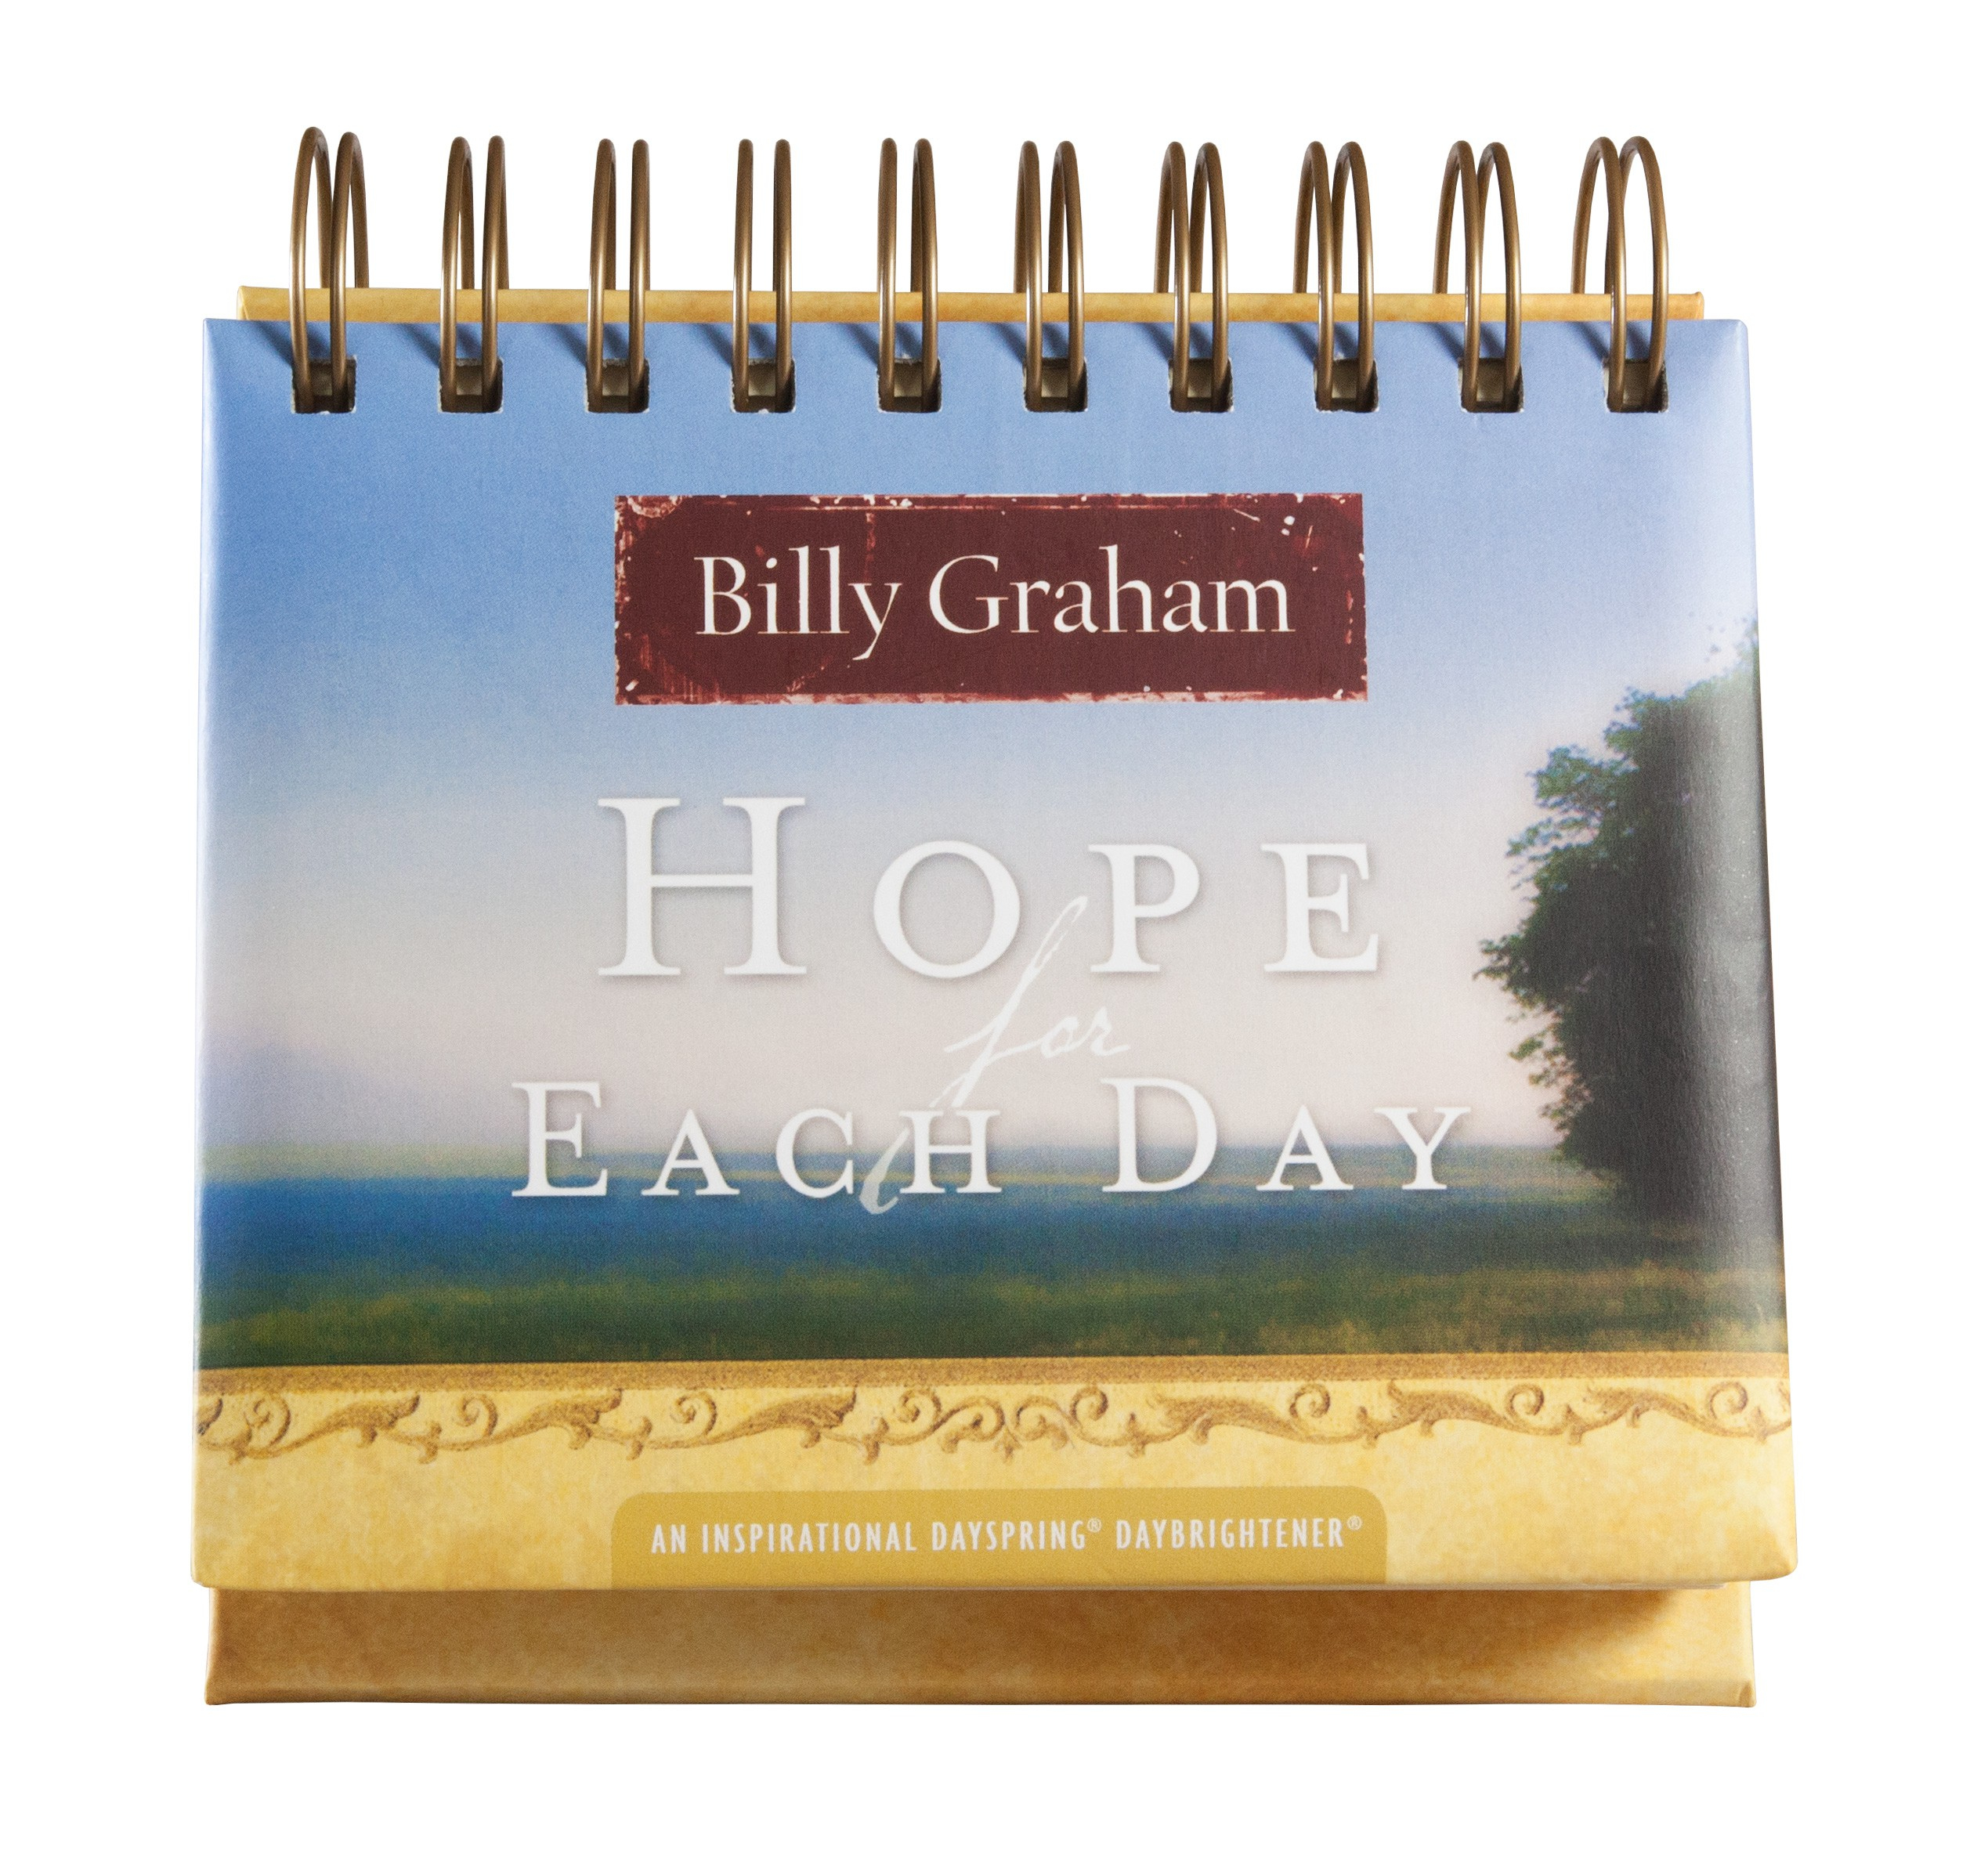 Hope For Each Day Daybrightener  Perpetual Calendar pertaining to Billy Graham Wisdom For Each Day 365 Day Perpetual Calendar